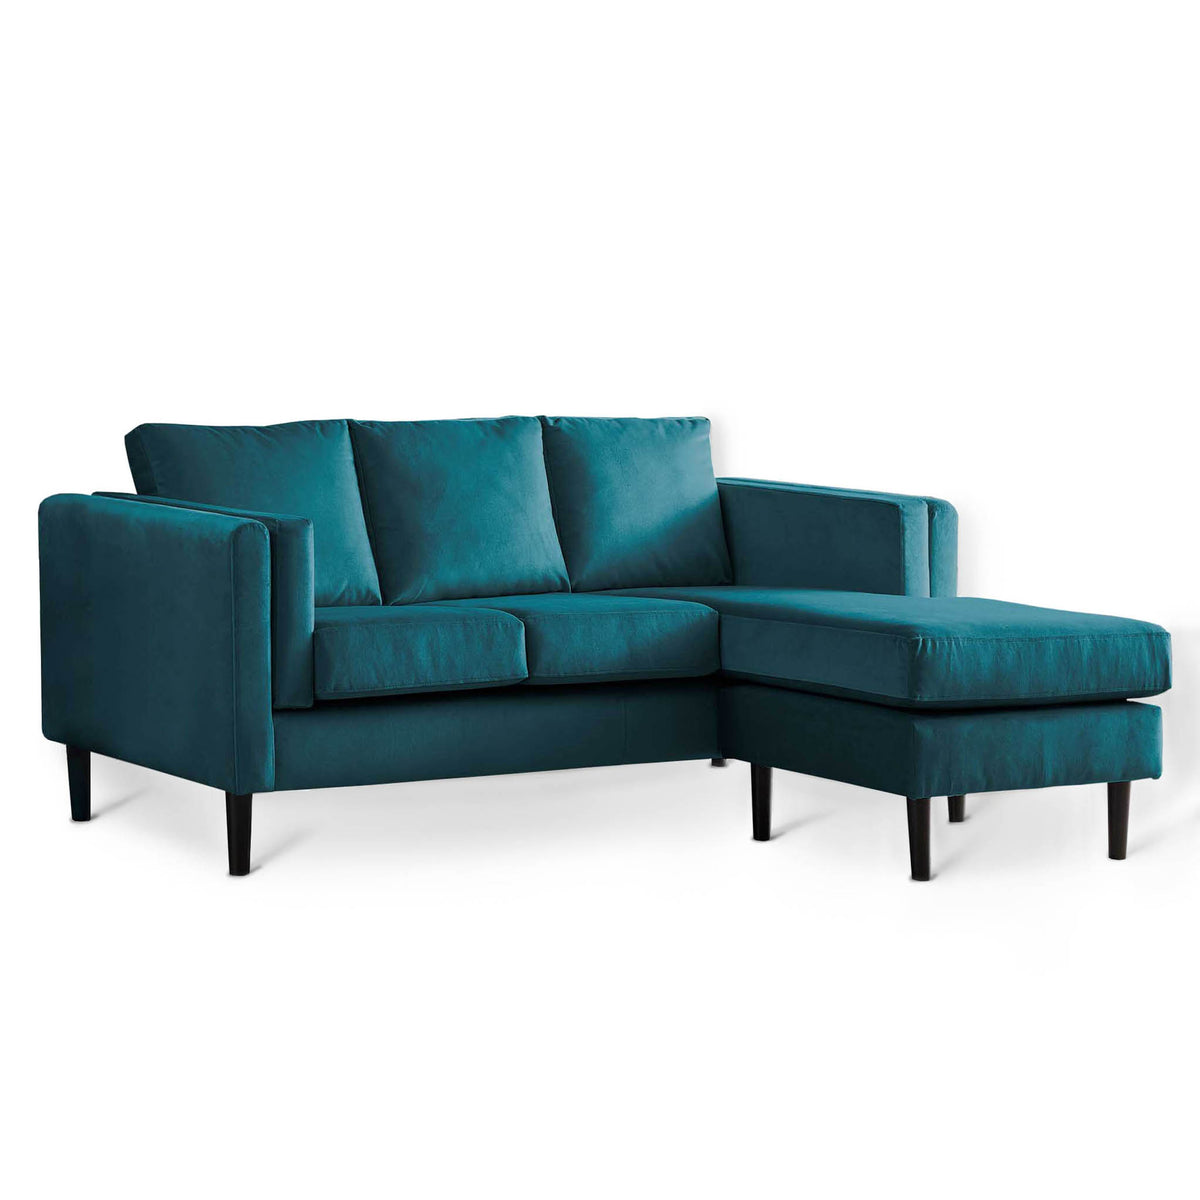 Sandringham Peacock Velvet Corner Chaise Sofa from Roseland Furniture